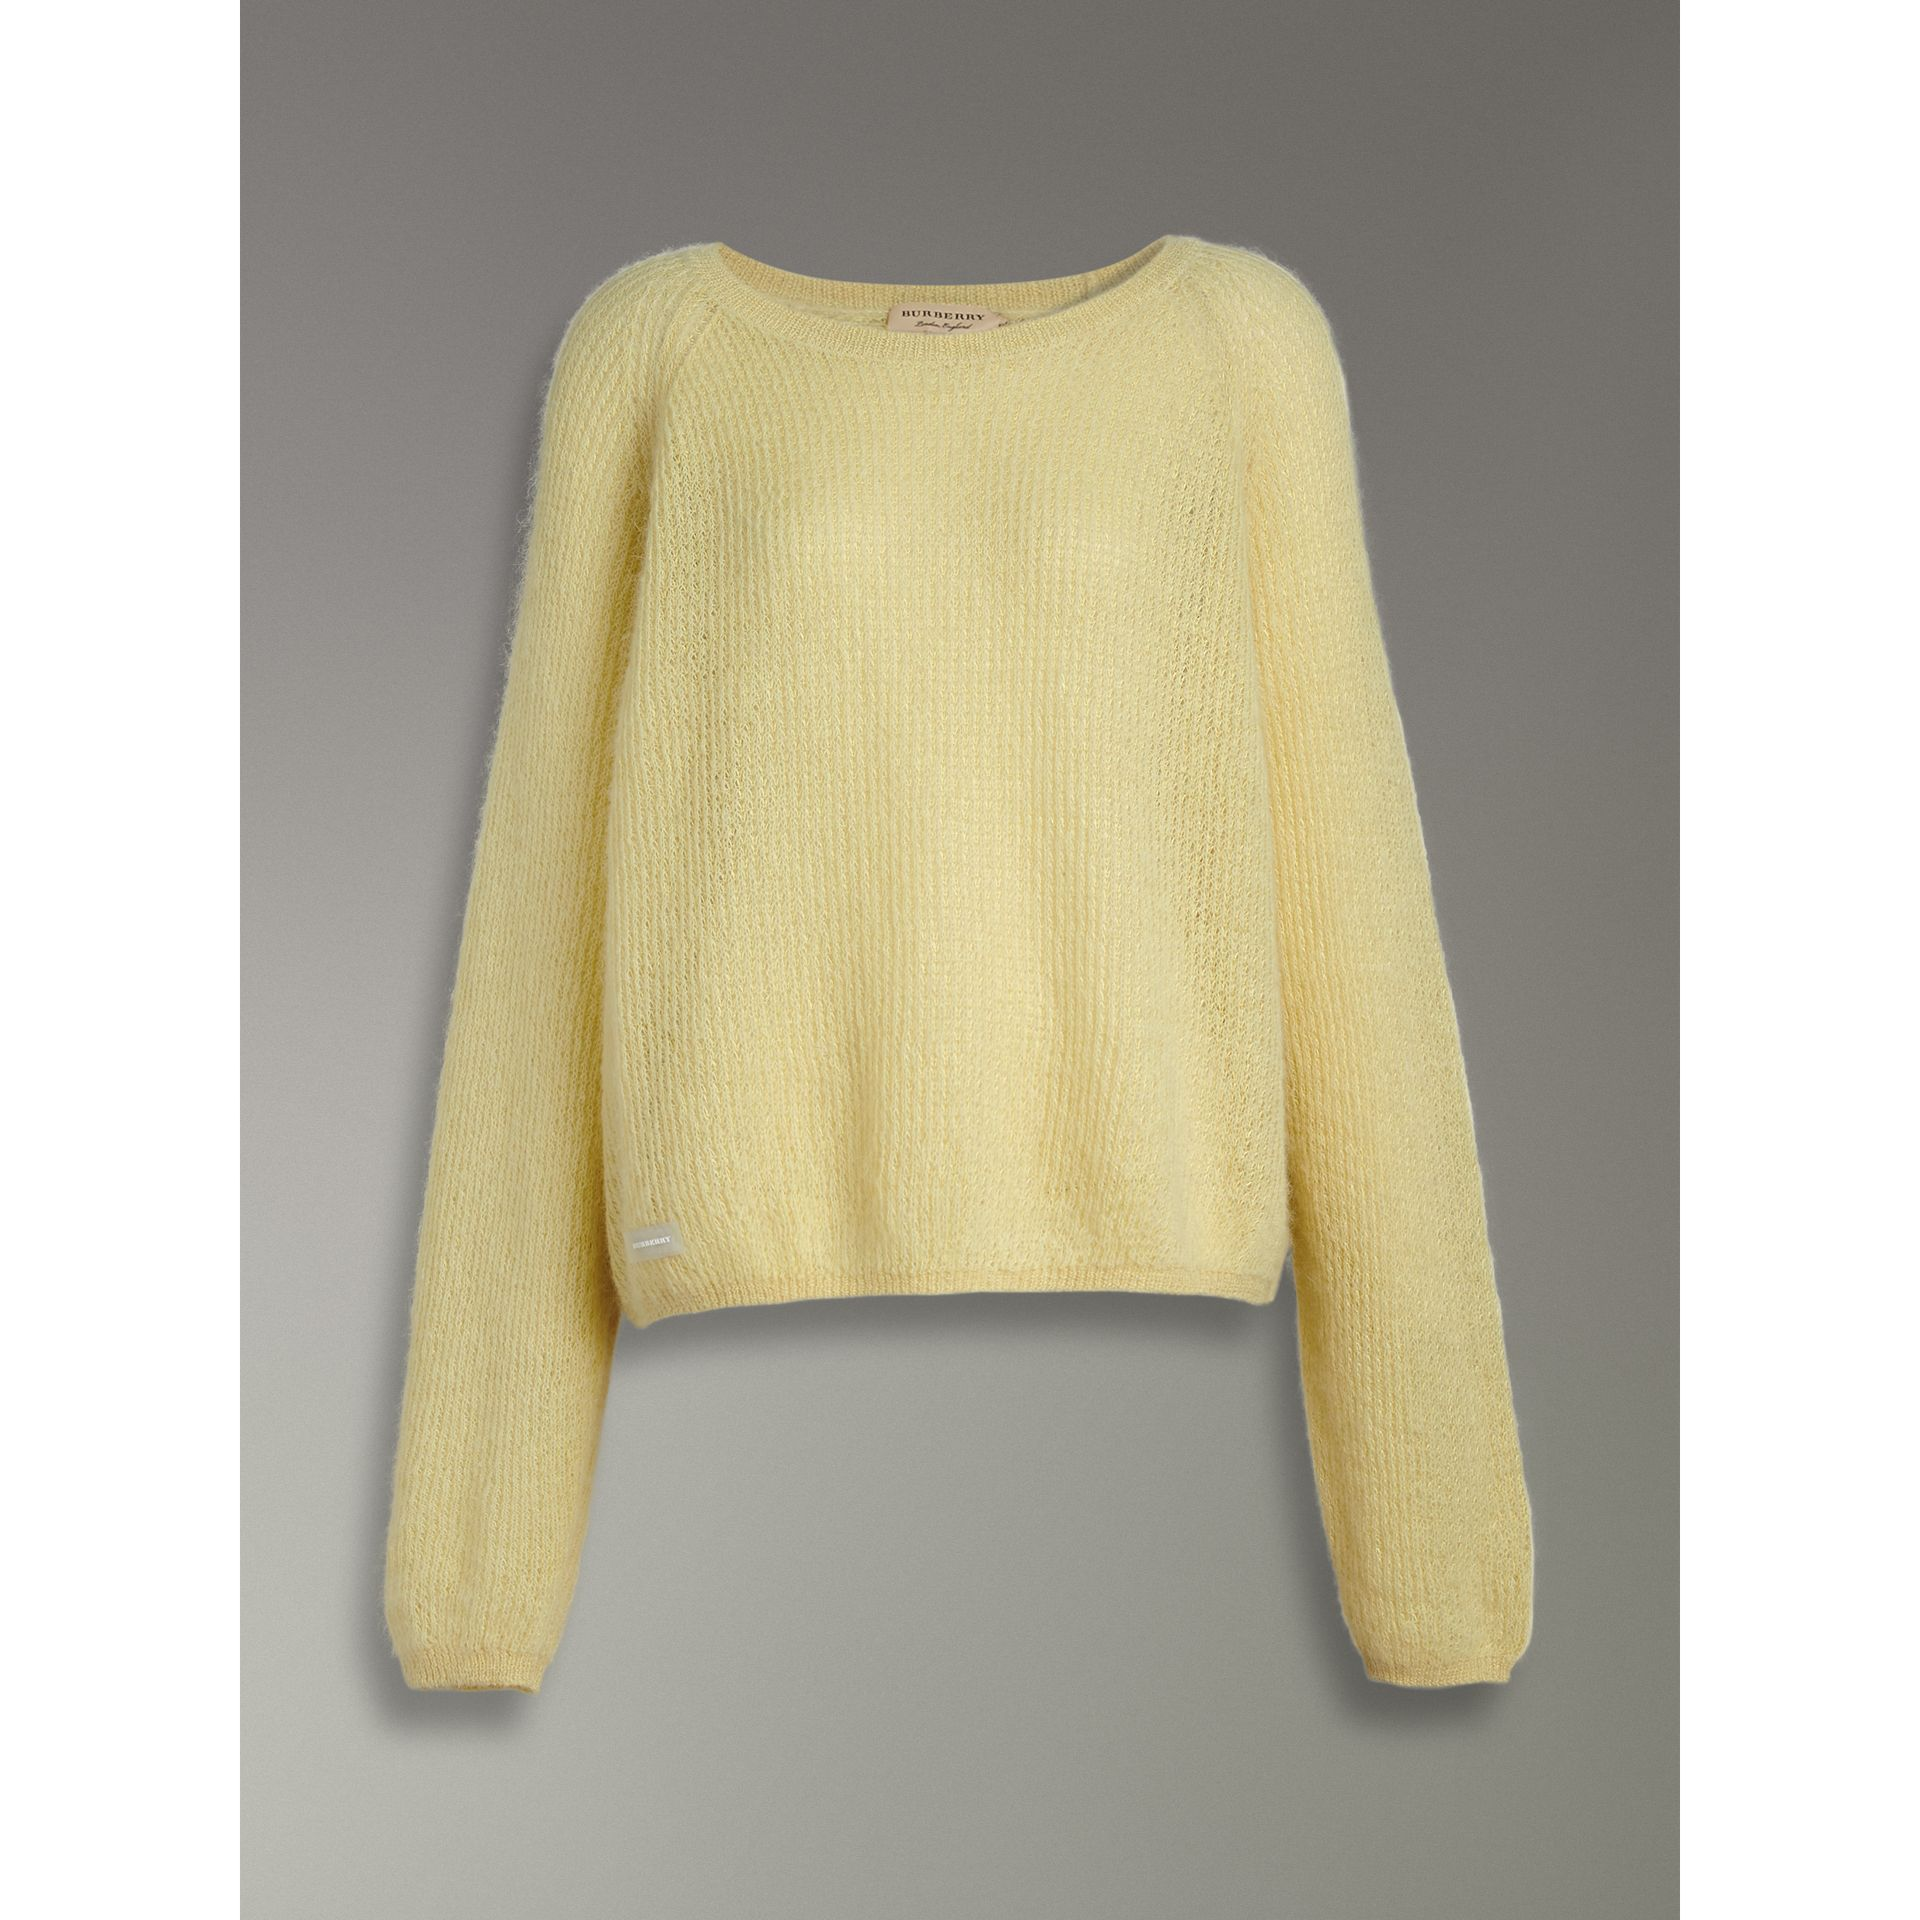 Mohair Silk Blend Sweater in Yellow Barley - Women | Burberry - gallery image 3